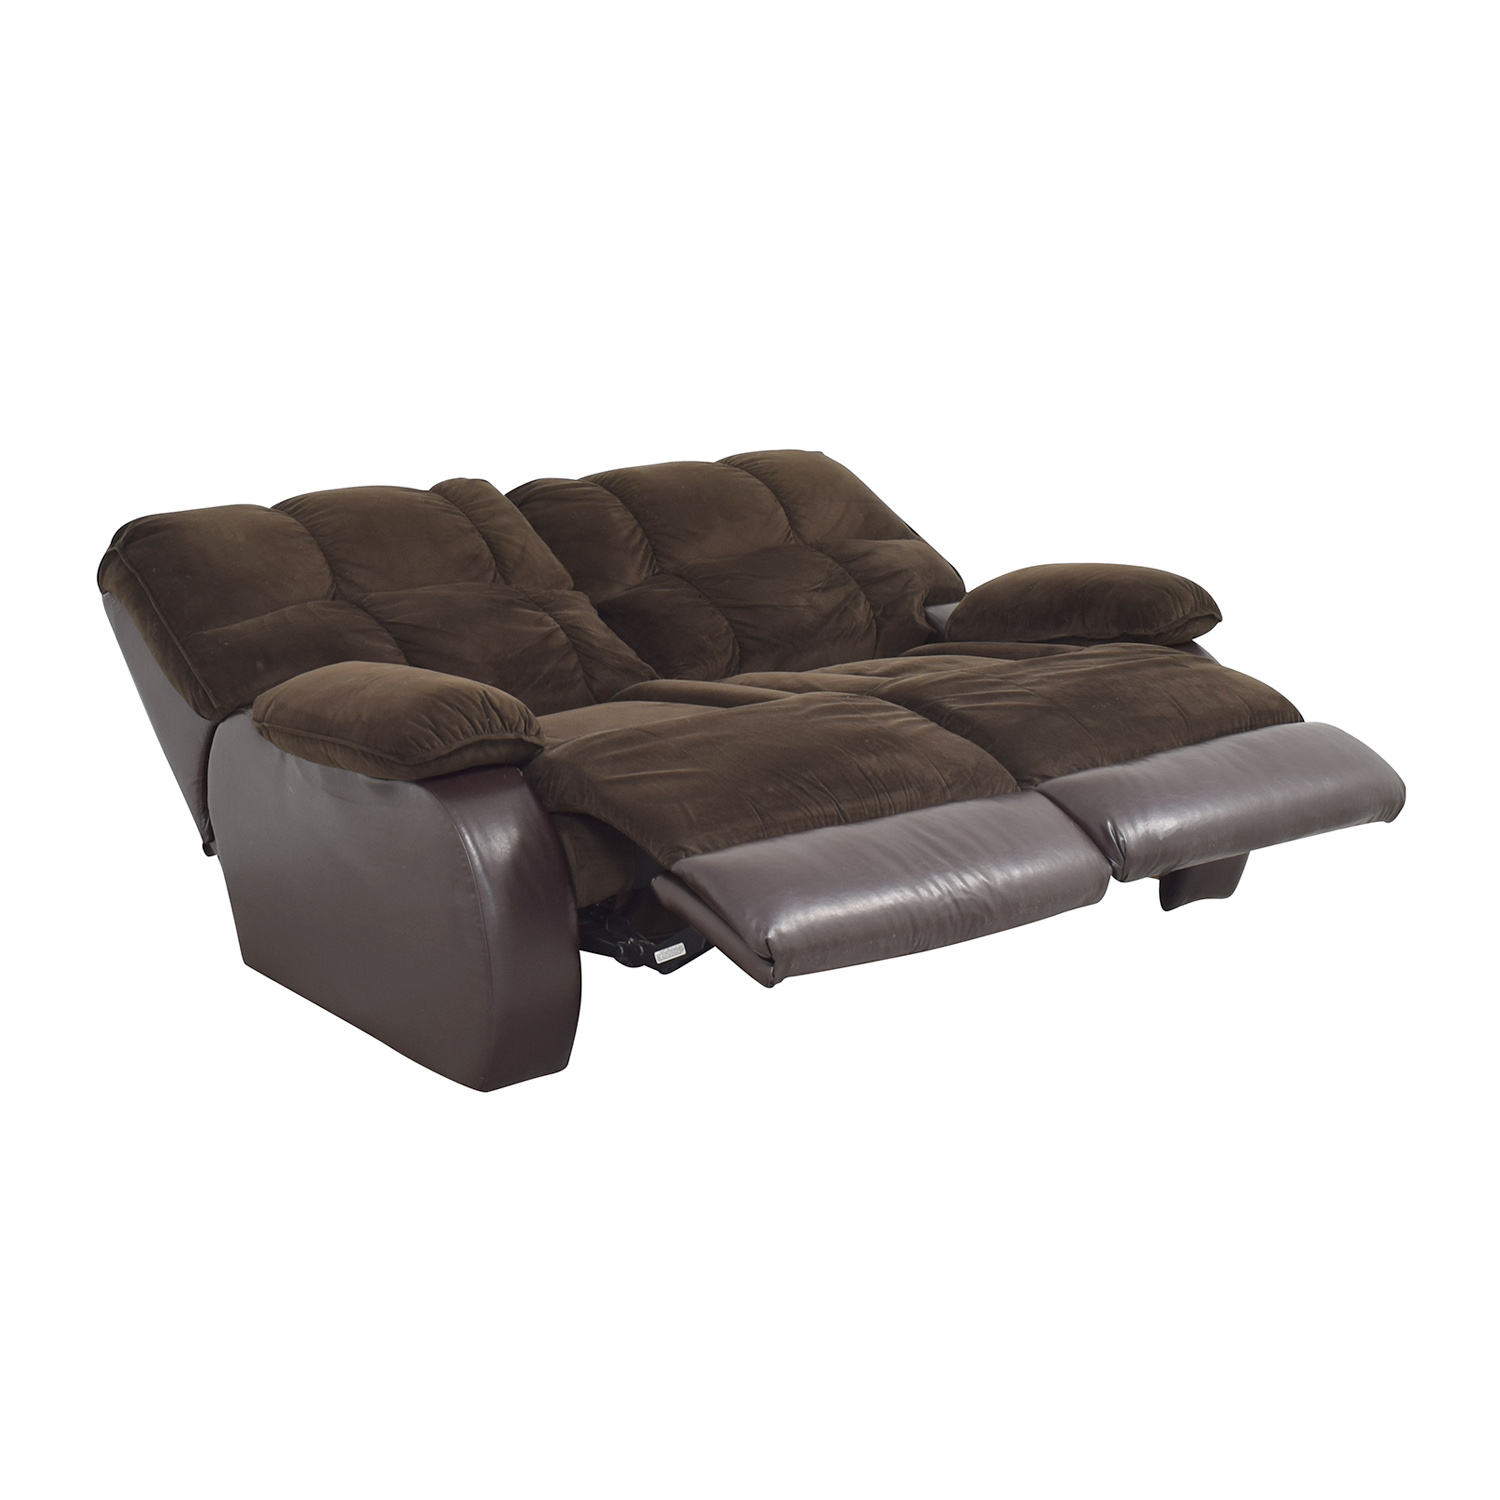 shop Raymour & Flanigan Reclining Loveseat Raymour & Flanigan Chairs